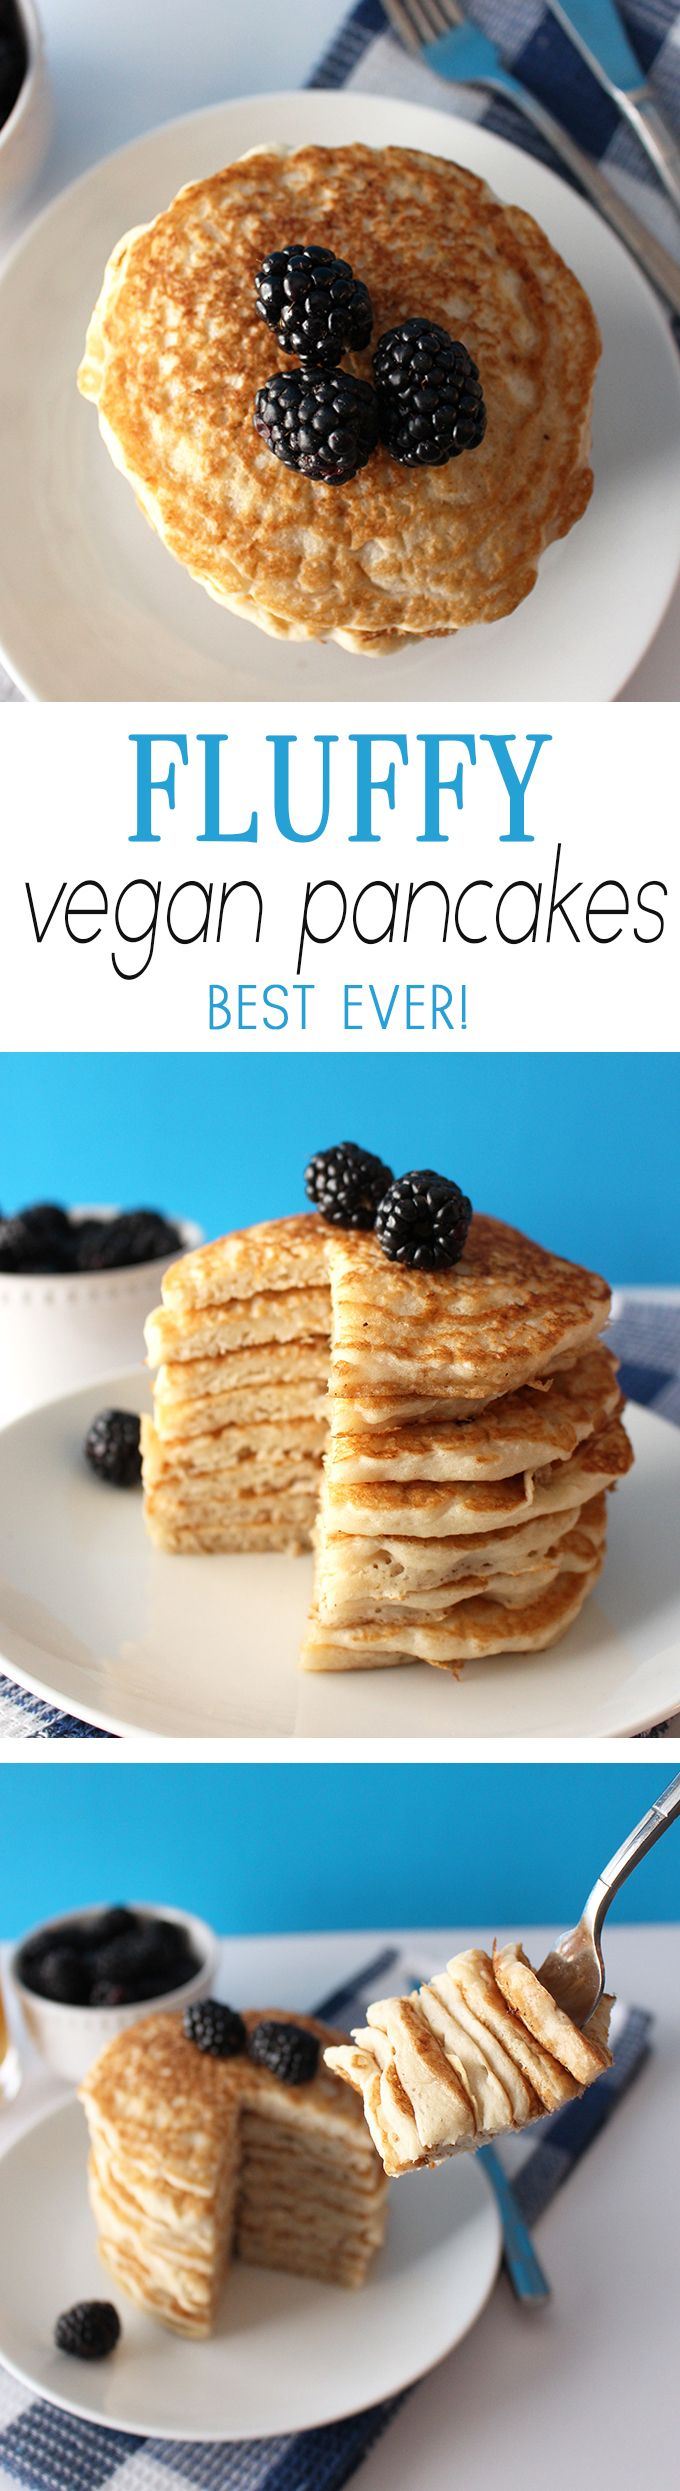 These vegan pancakes are SUPER fluffy and SUPER delicious! They are so ridiculously easy to make, you'll never need a pre-made pancake mix again!